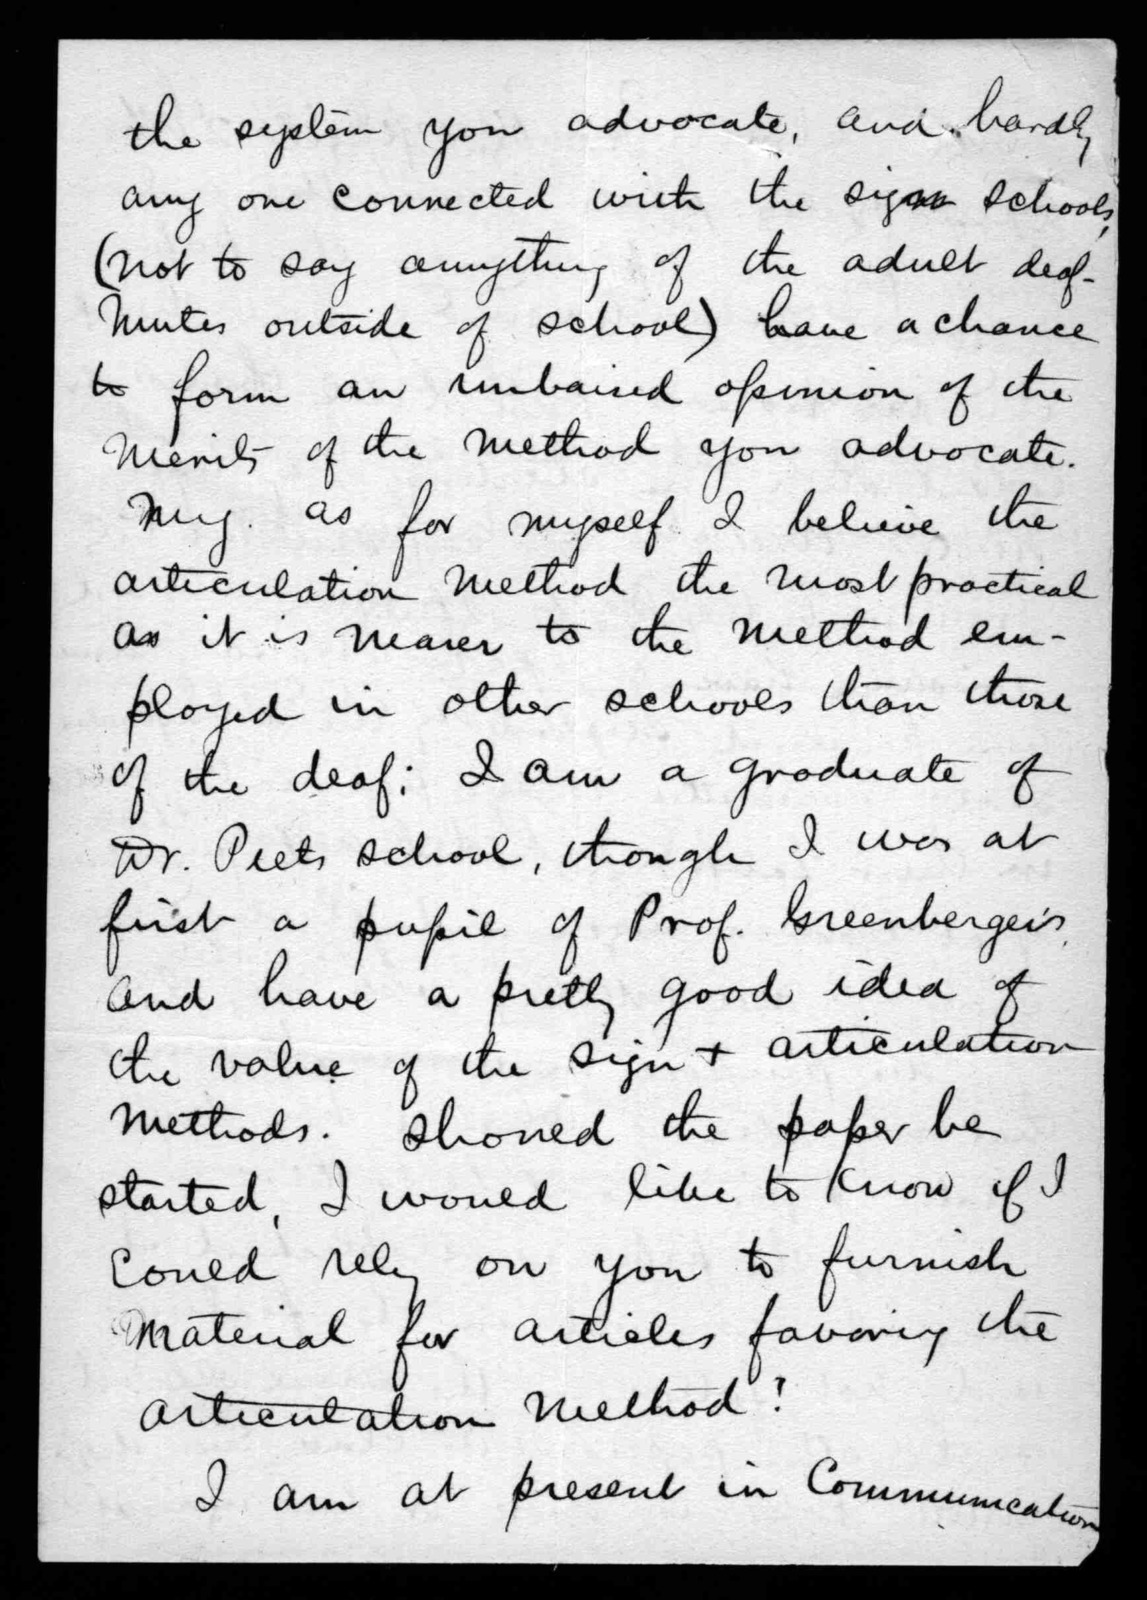 Letter from J.F. Donnelly to Alexander Graham Bell, April 24